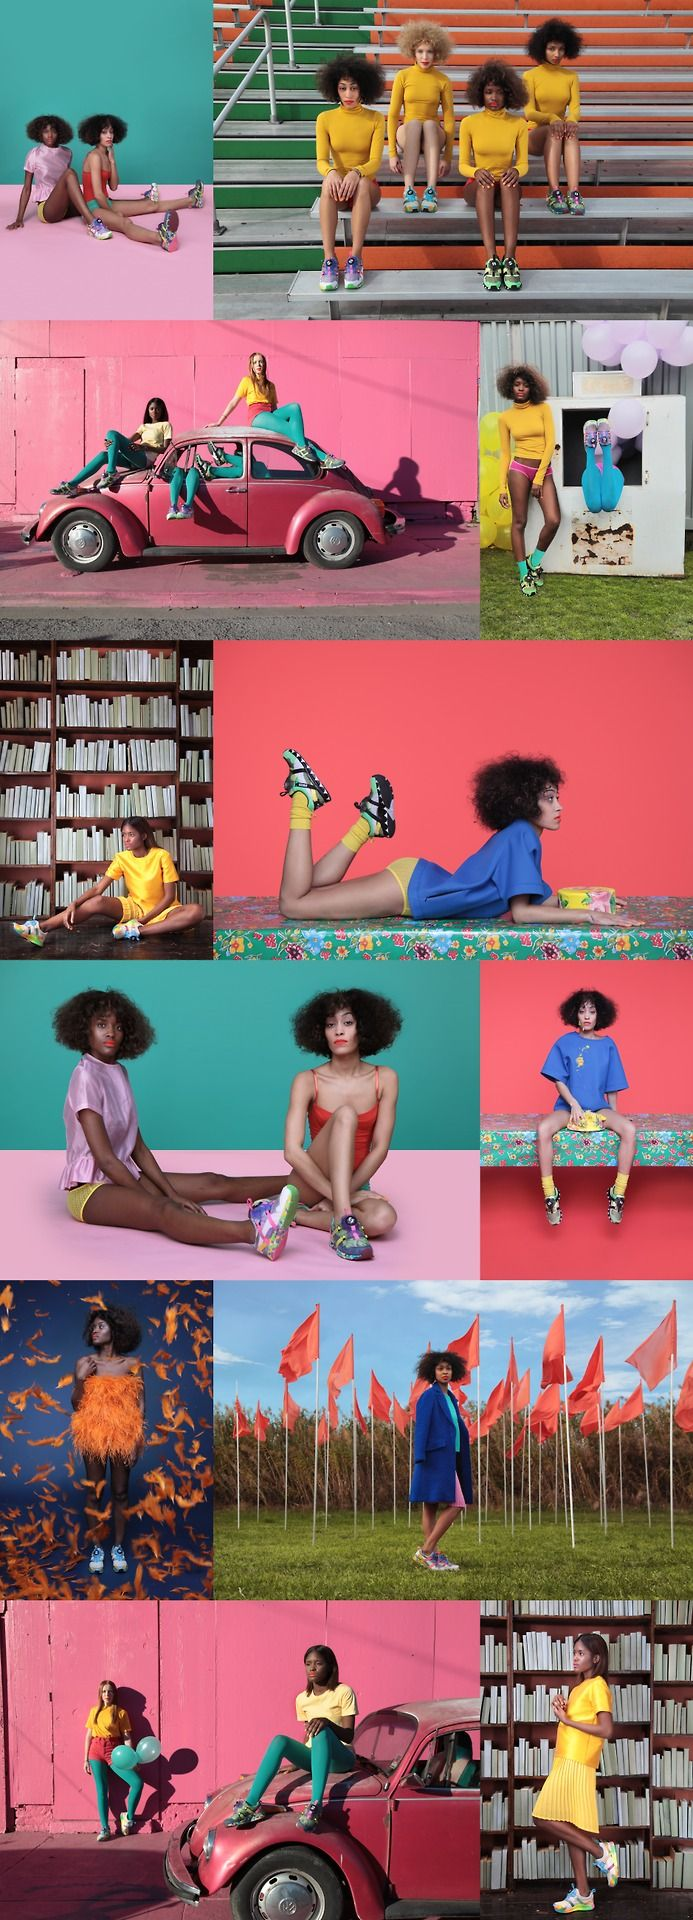 The baby sister...CREATIVE CONCEPT & ART DIRECTION BY SOLANGE KNOWLES PHOTOGRAPHY BY ALAN FERGUSON